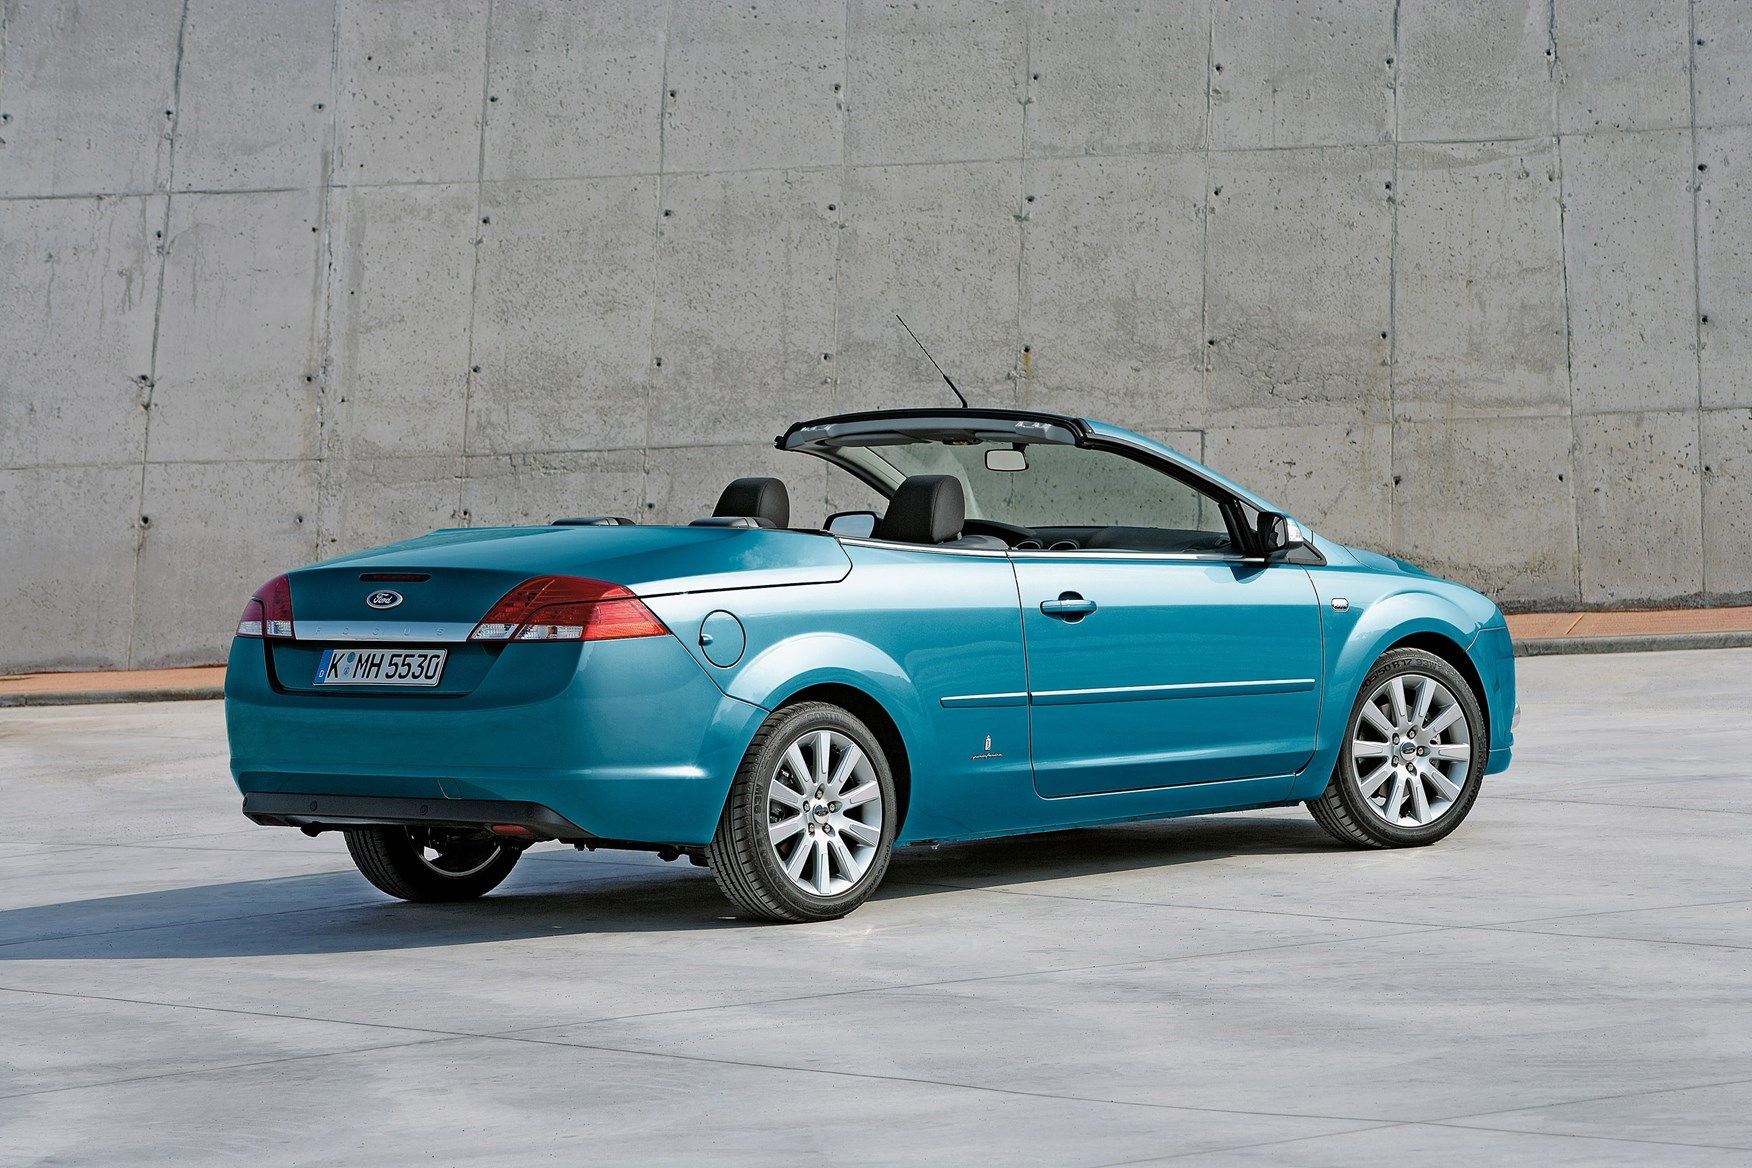 ford focus coup cabriolet 2006 2010 features equipment and accessories parkers. Black Bedroom Furniture Sets. Home Design Ideas